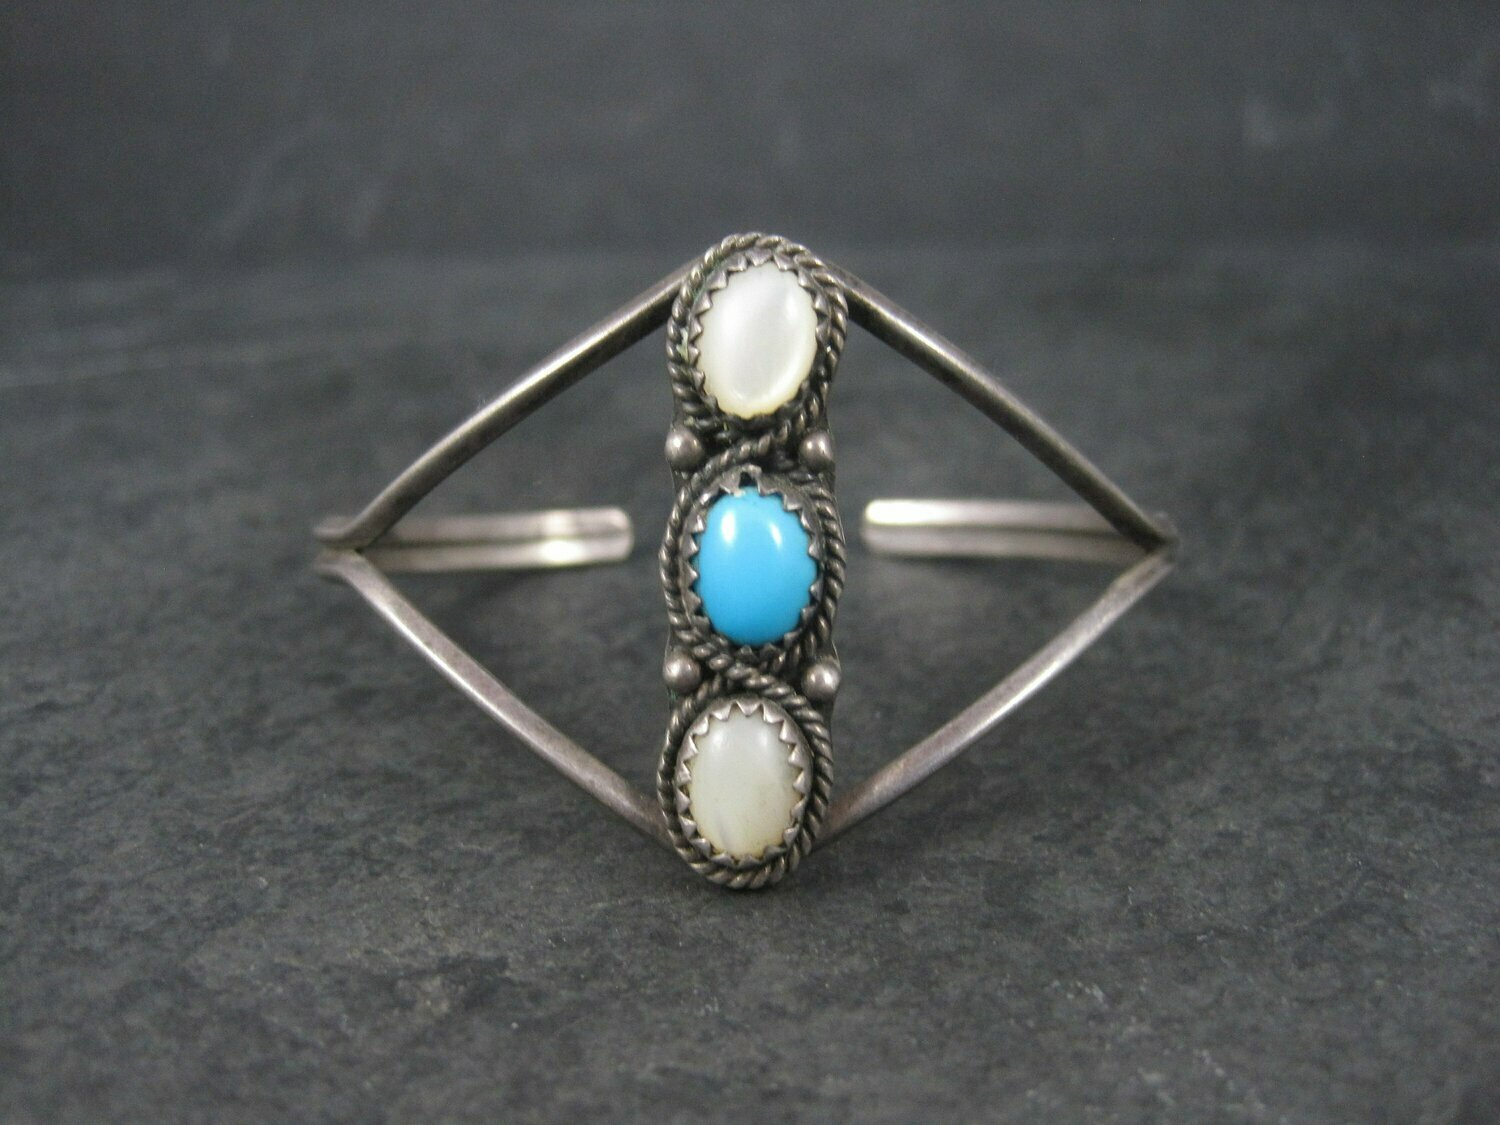 Small Vintage Southwestern Sterling Mother of Pearl Turquoise Cuff Bracelet 5.5 Inches